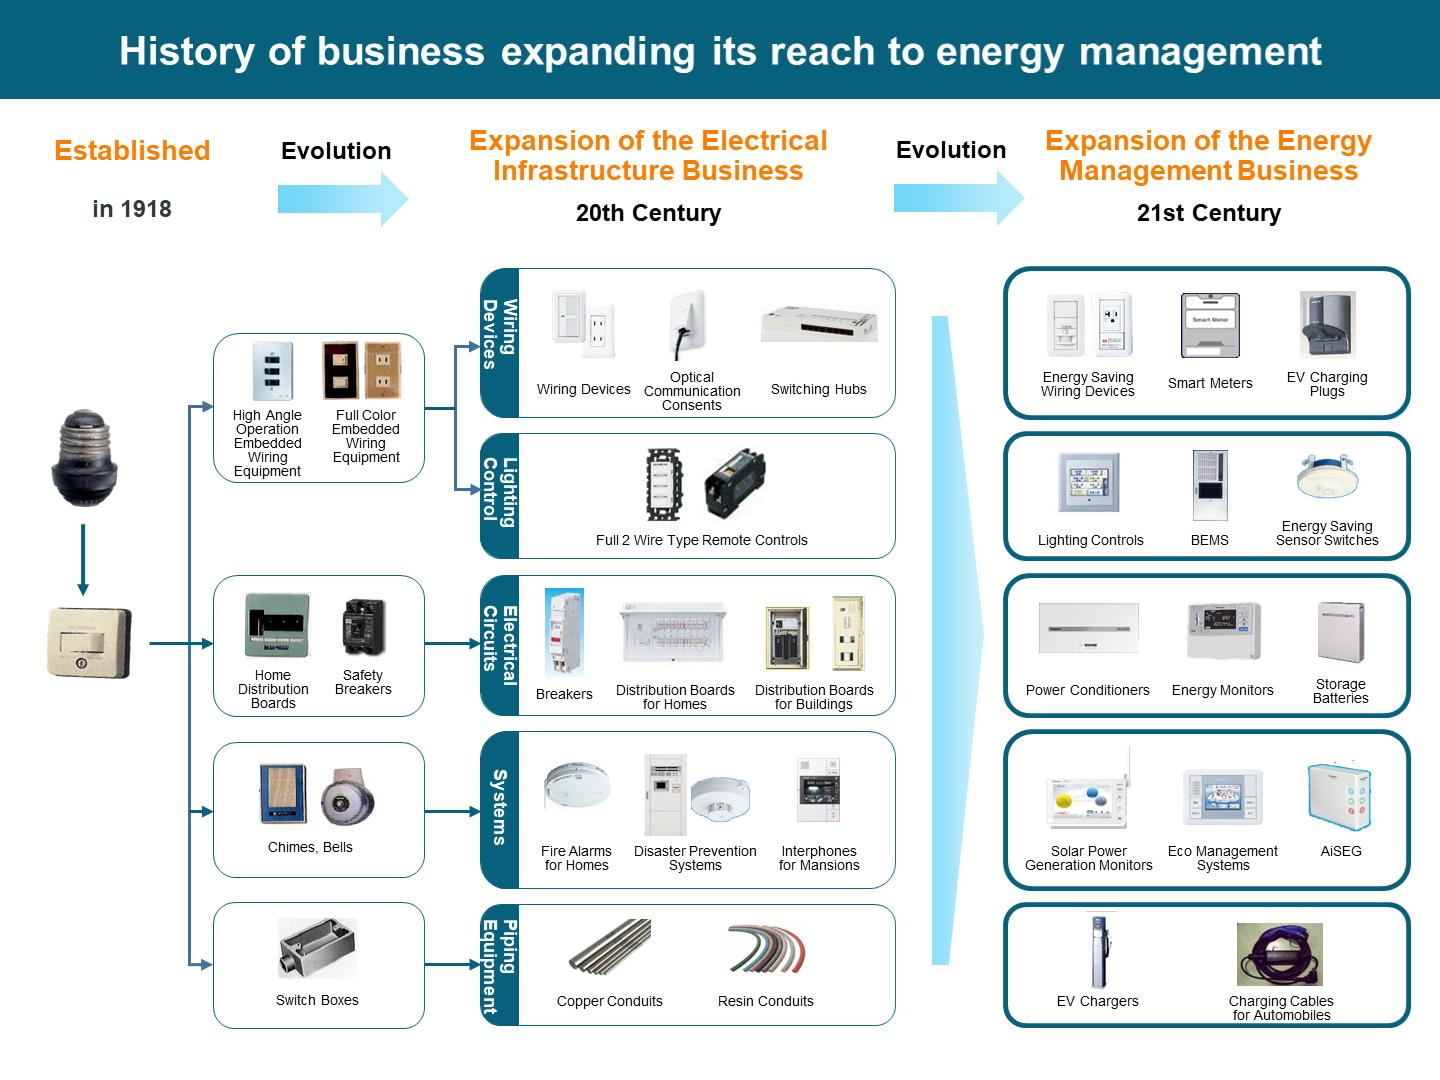 figure: history of business expanding its reach to energy management